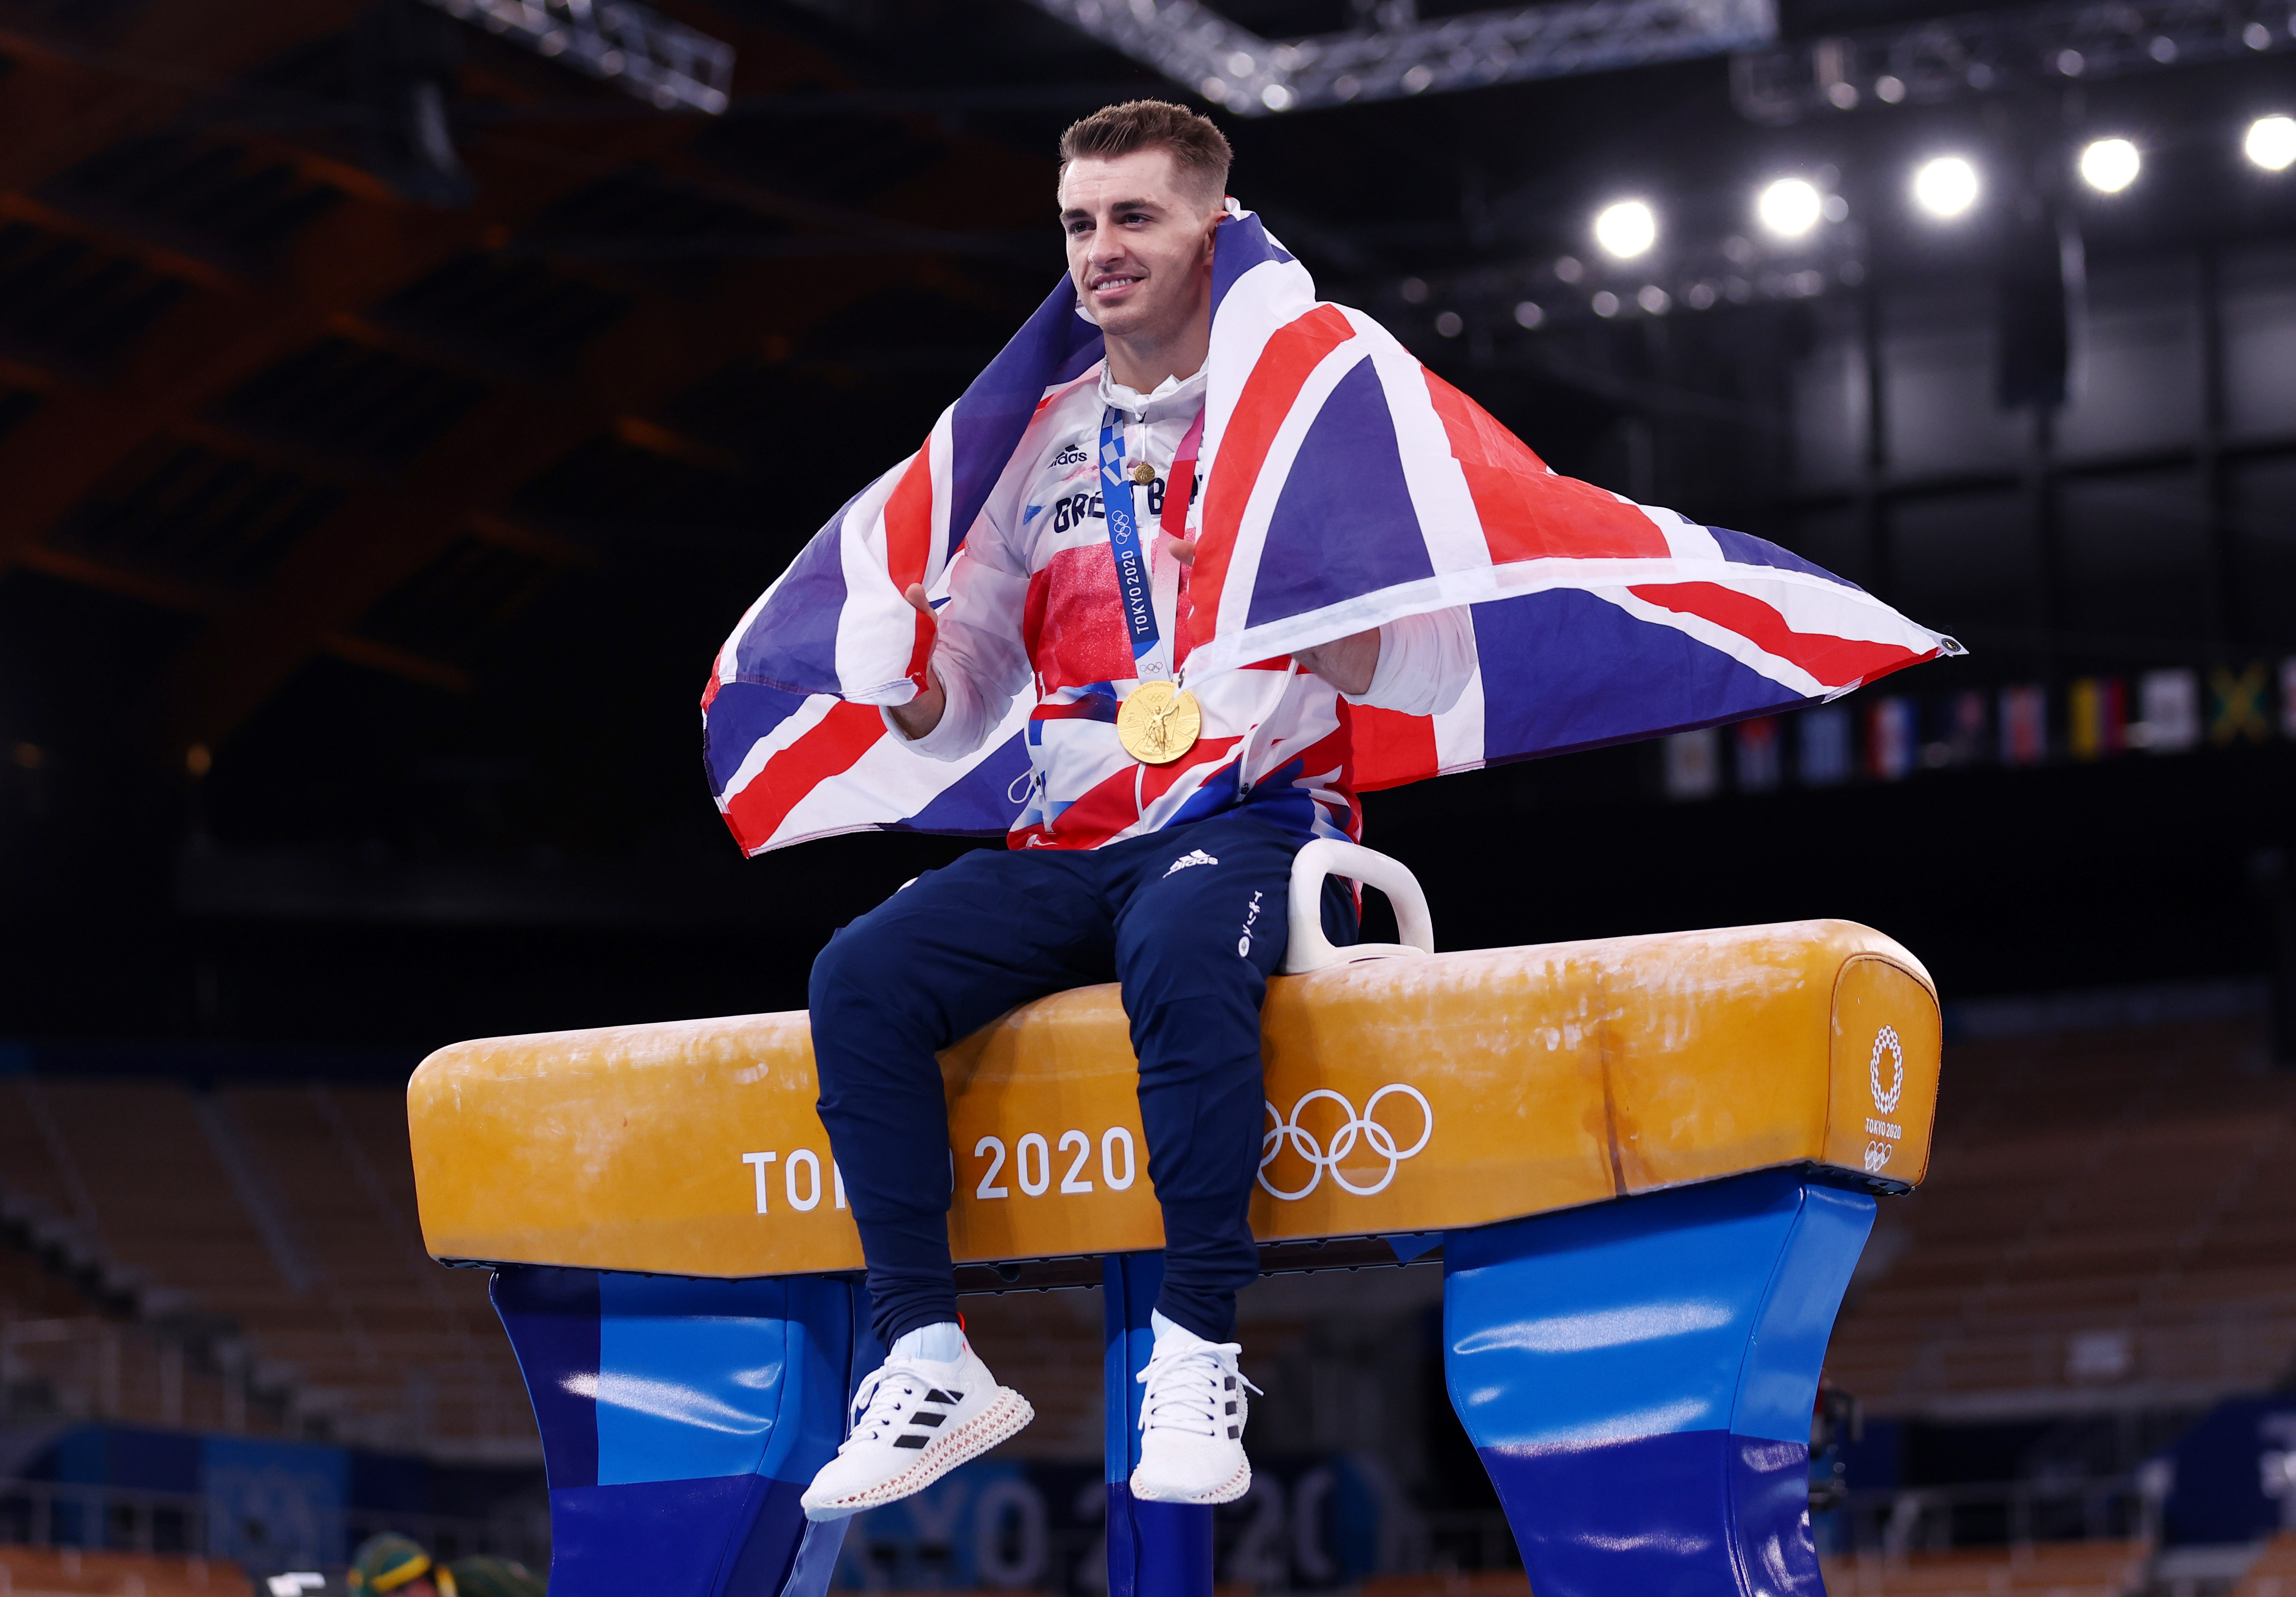 Tokyo 2020 Olympics - Gymnastics - Artistic - Men's Pommel Horse - Medal Ceremony - Ariake Gymnastics Centre, Tokyo, Japan - August 1, 2021. Gold medallist Max Whitlock of Britain poses with his medal whilst sitting on the pommel horse REUTERS/Mike Blake